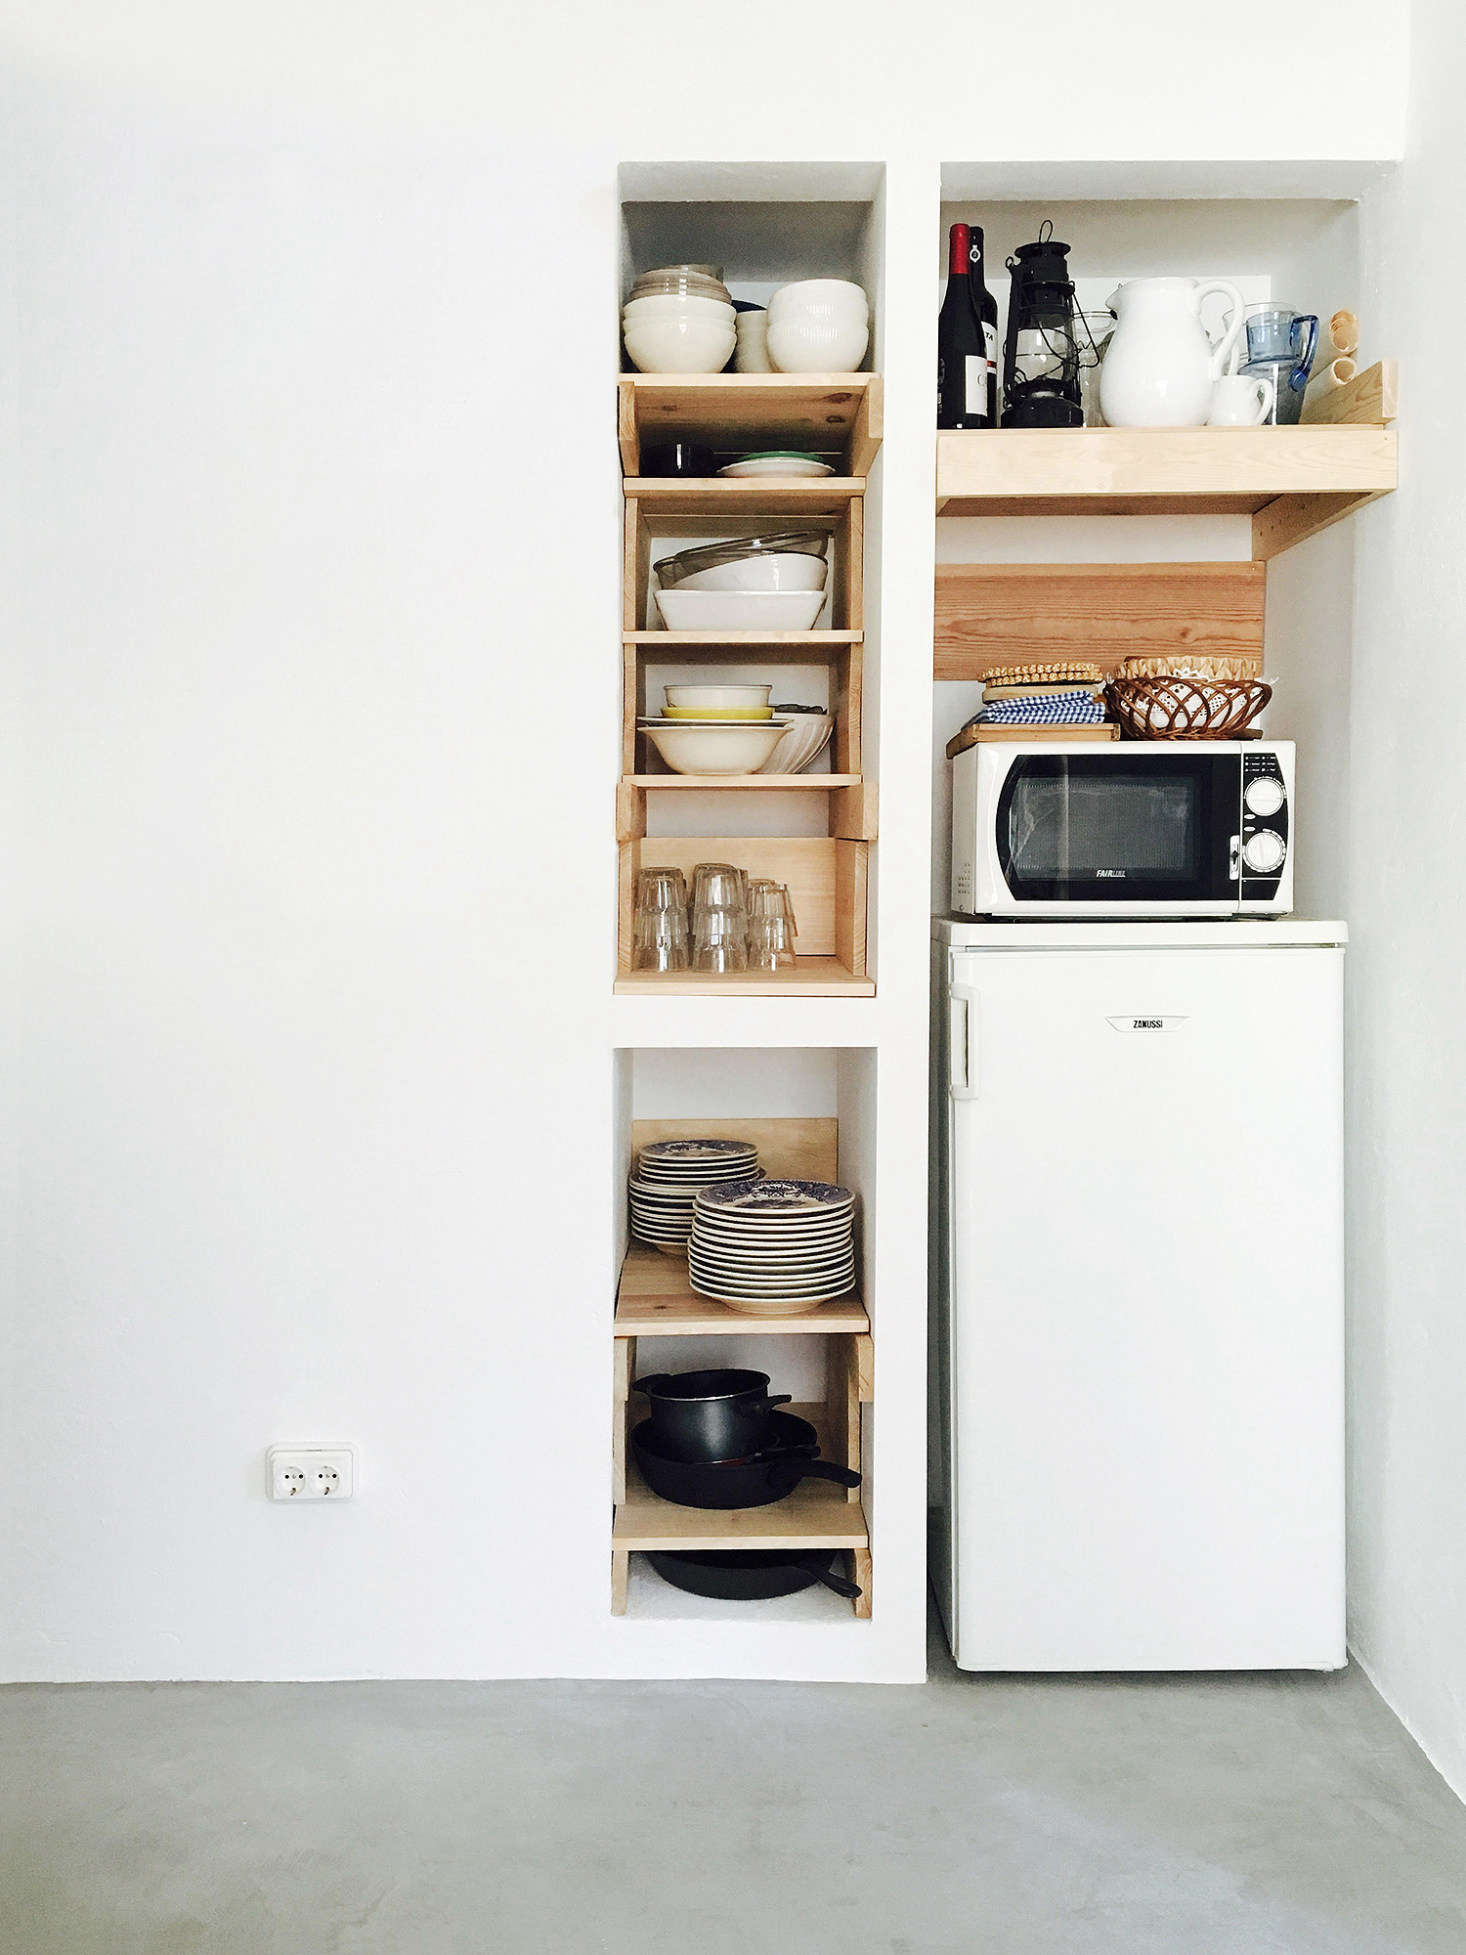 Bento chose waxed woodwork as a third main material, and it's a theme repeated throughout the house. Here, it forms ad-hoc open storage in a niche beside the European-sized refrigerator.